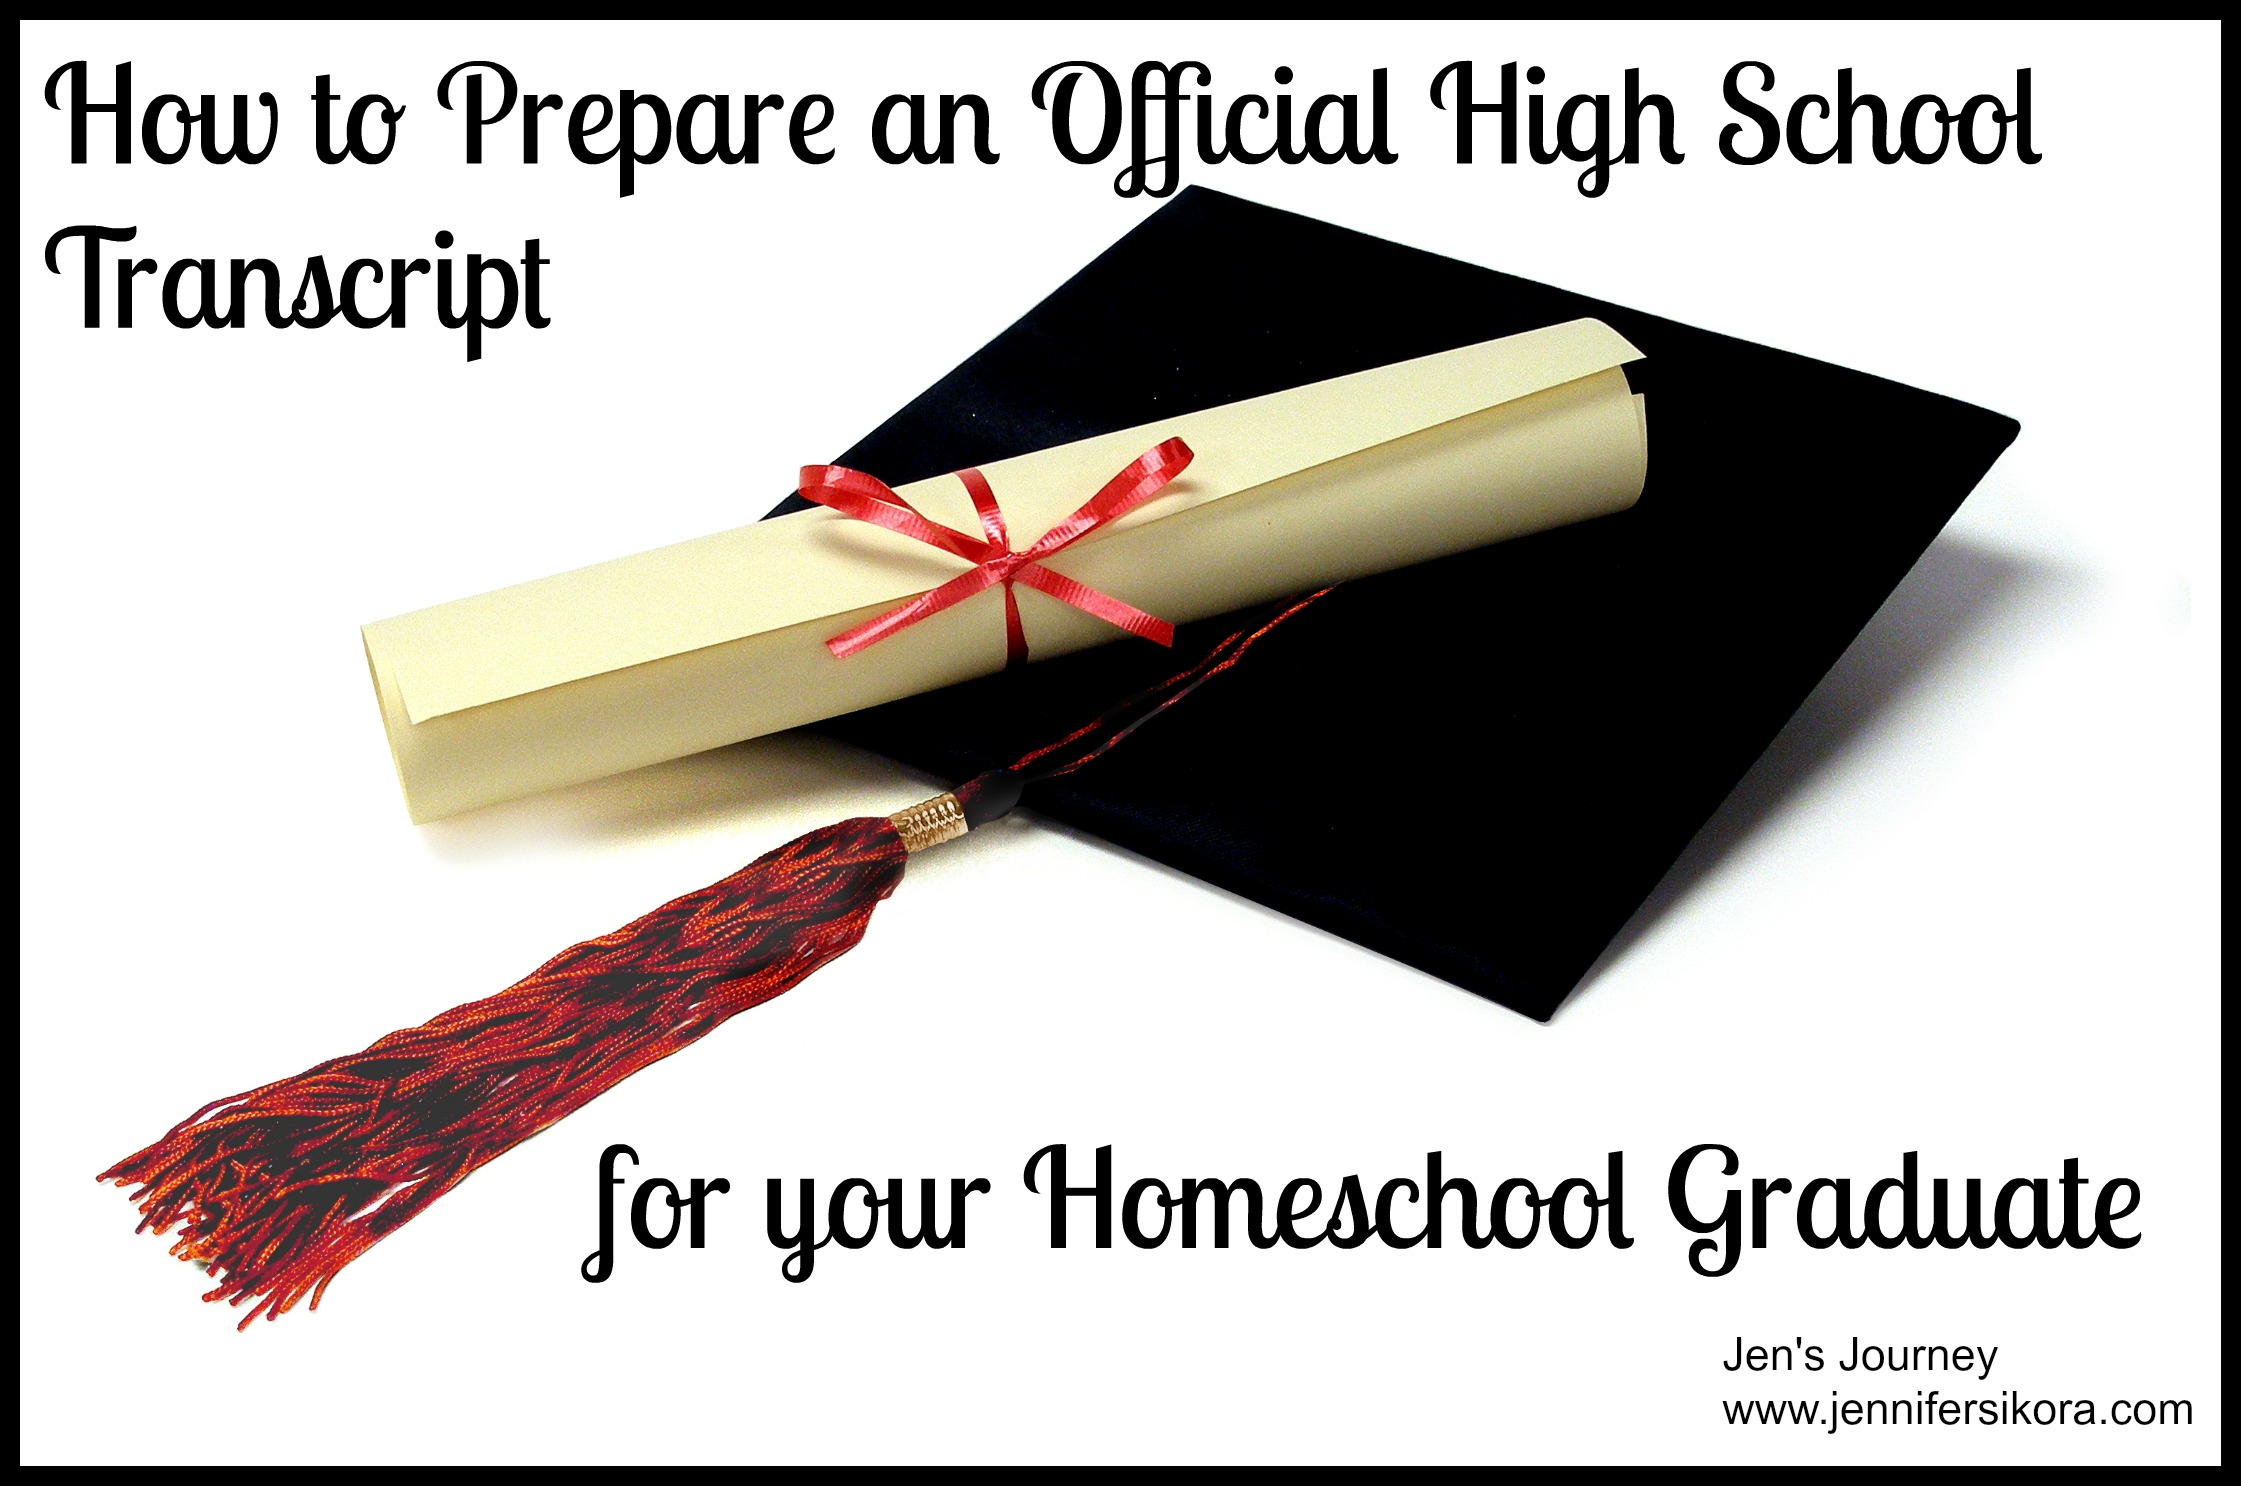 How to Prepare a High School Transcript for Your Homeschool Graduate